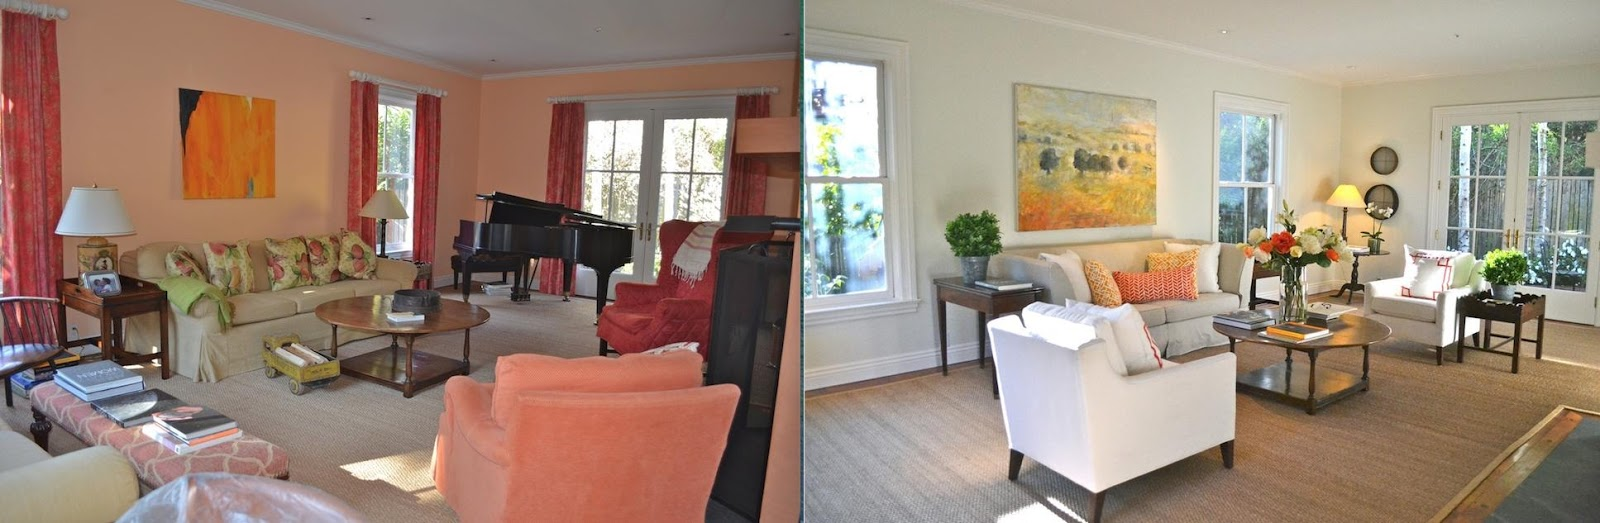 Lighter and brighter furniture can make a big difference, as can removing curtains and exposing windows